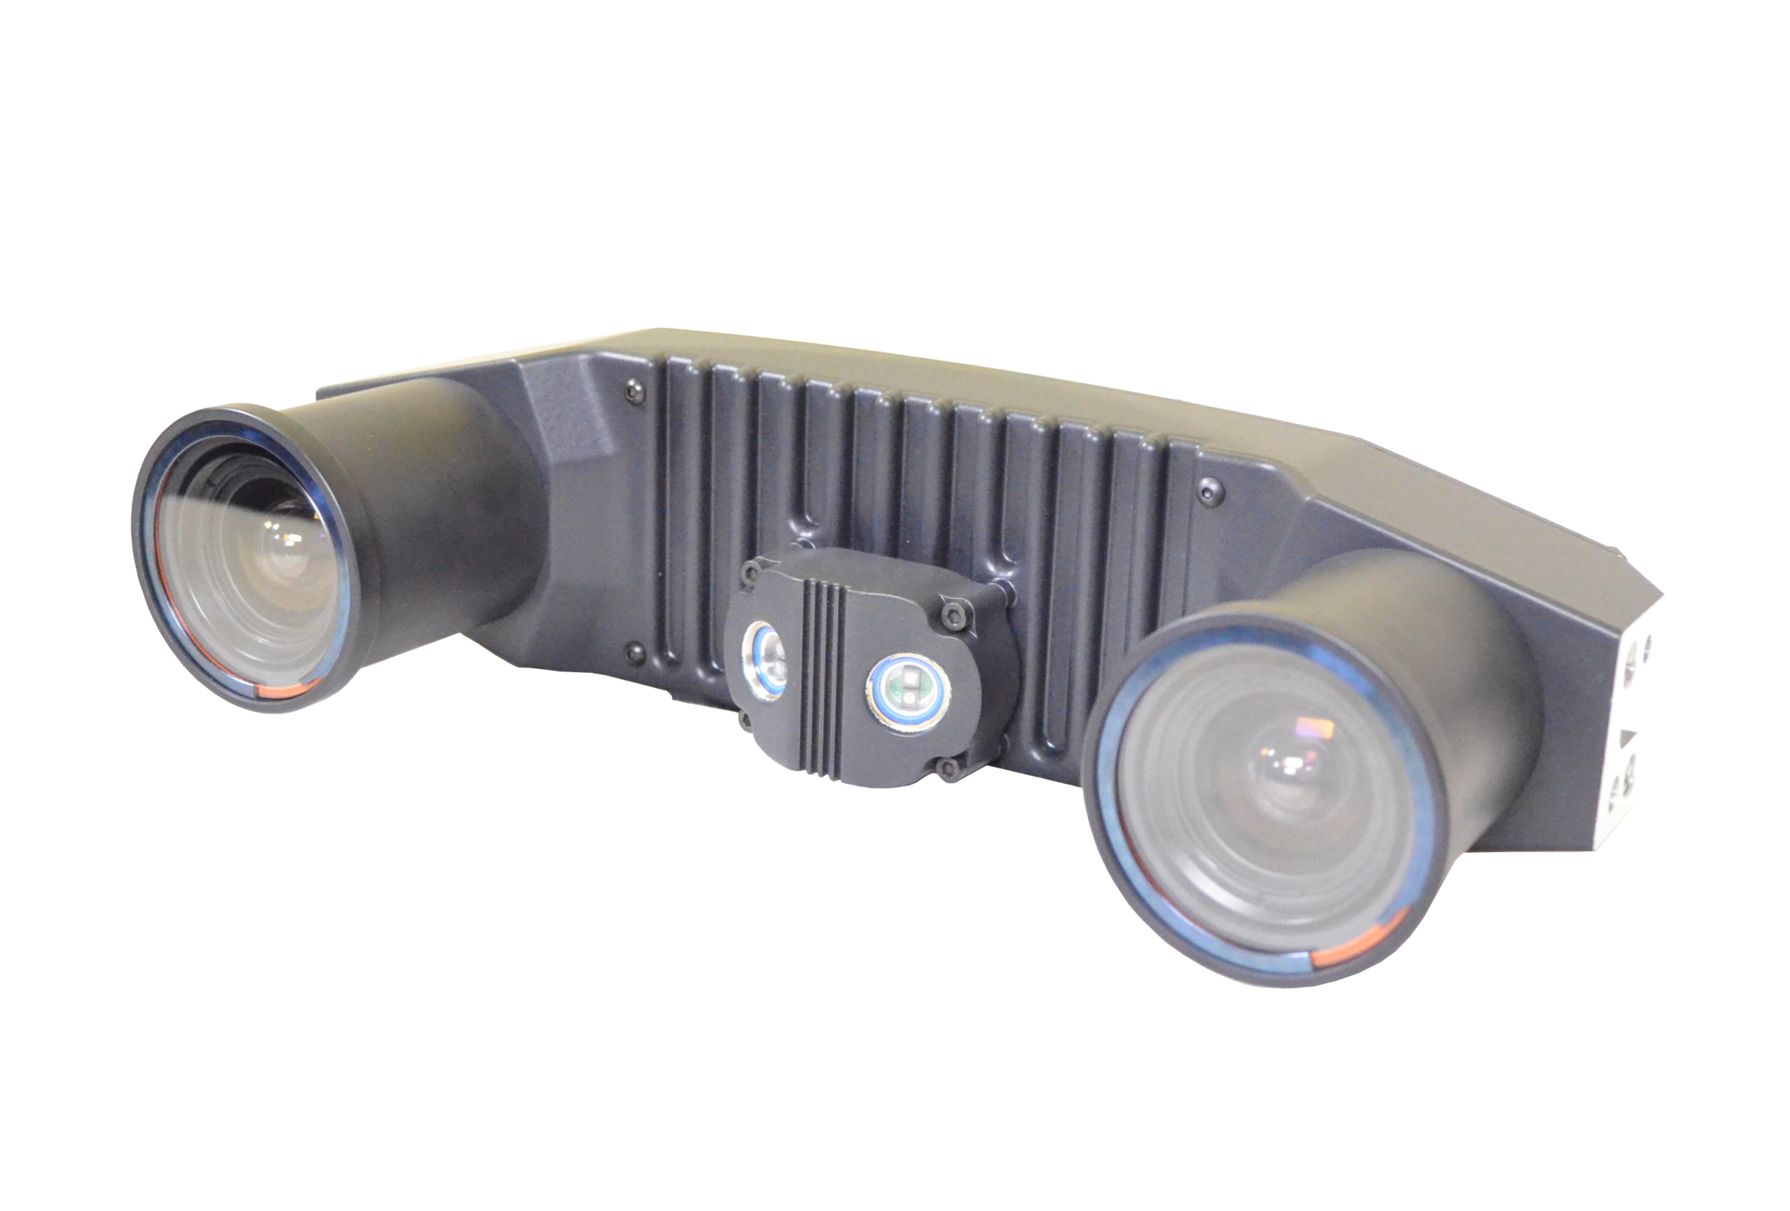 The environmentally-robust MultiSense S21B features a 21cm baseline and various factory-installed lens options.